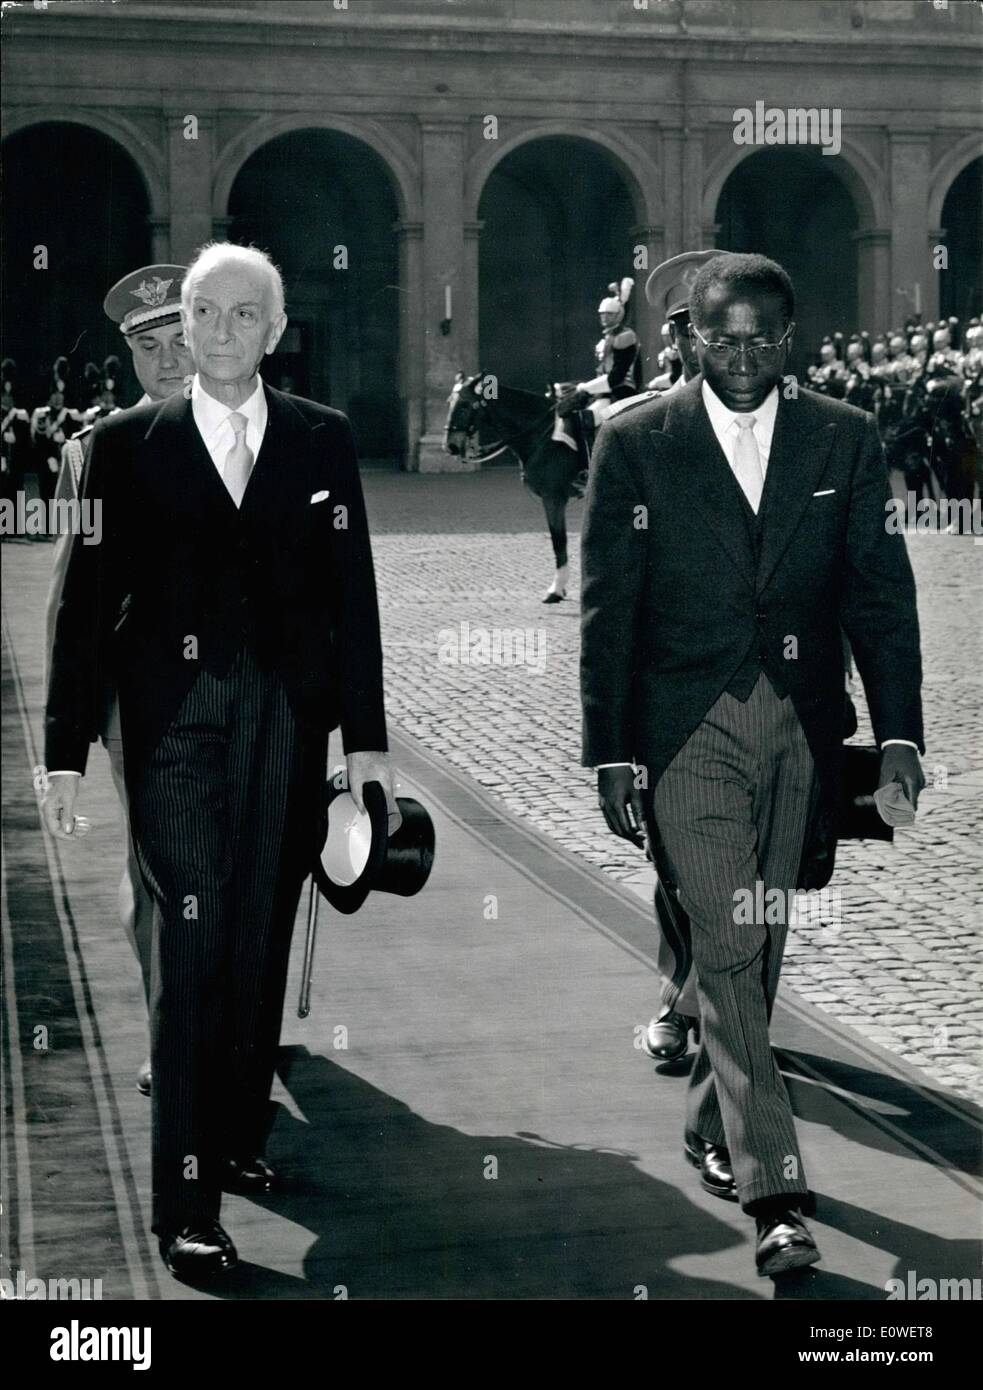 Oct. 10, 1962 - The President of the republic of Senala, Mr. Leopold Seder Senghor is in Rome to the official visit. Photo shows Mr. L.S. Senghor and Italian President hon. Antonio Segni at their arrival at Quirinale Palace. - Stock Image